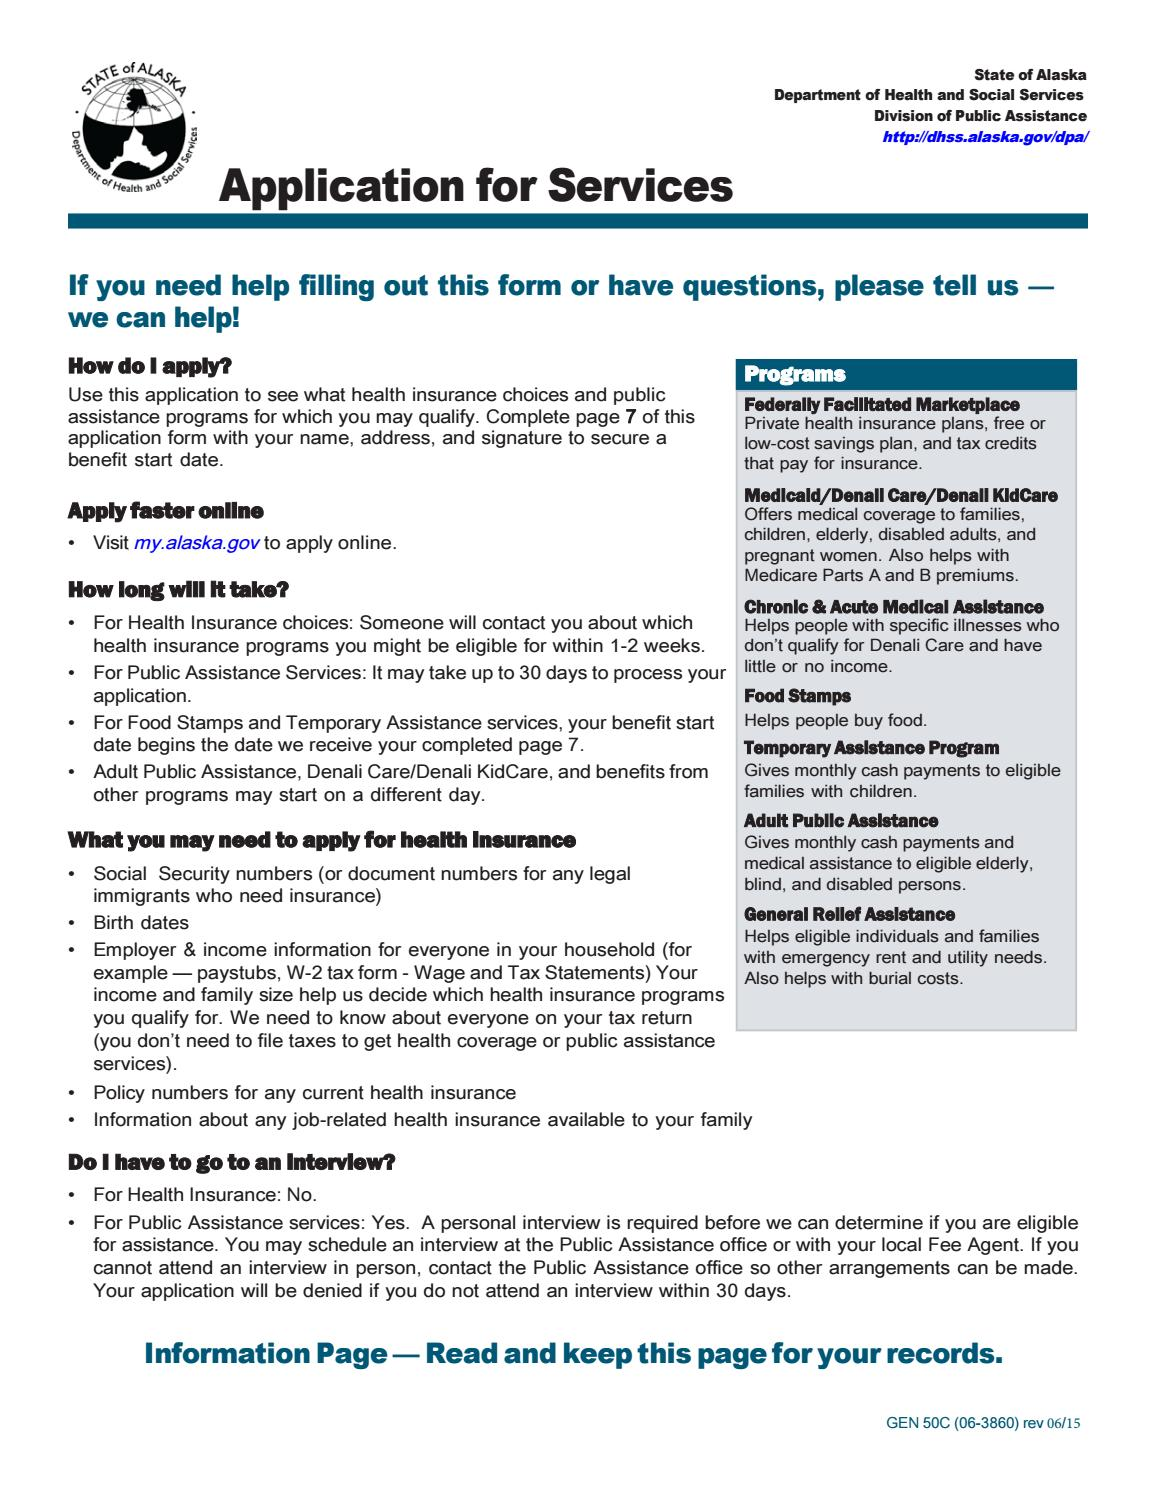 How to Apply for Public Assistance foto